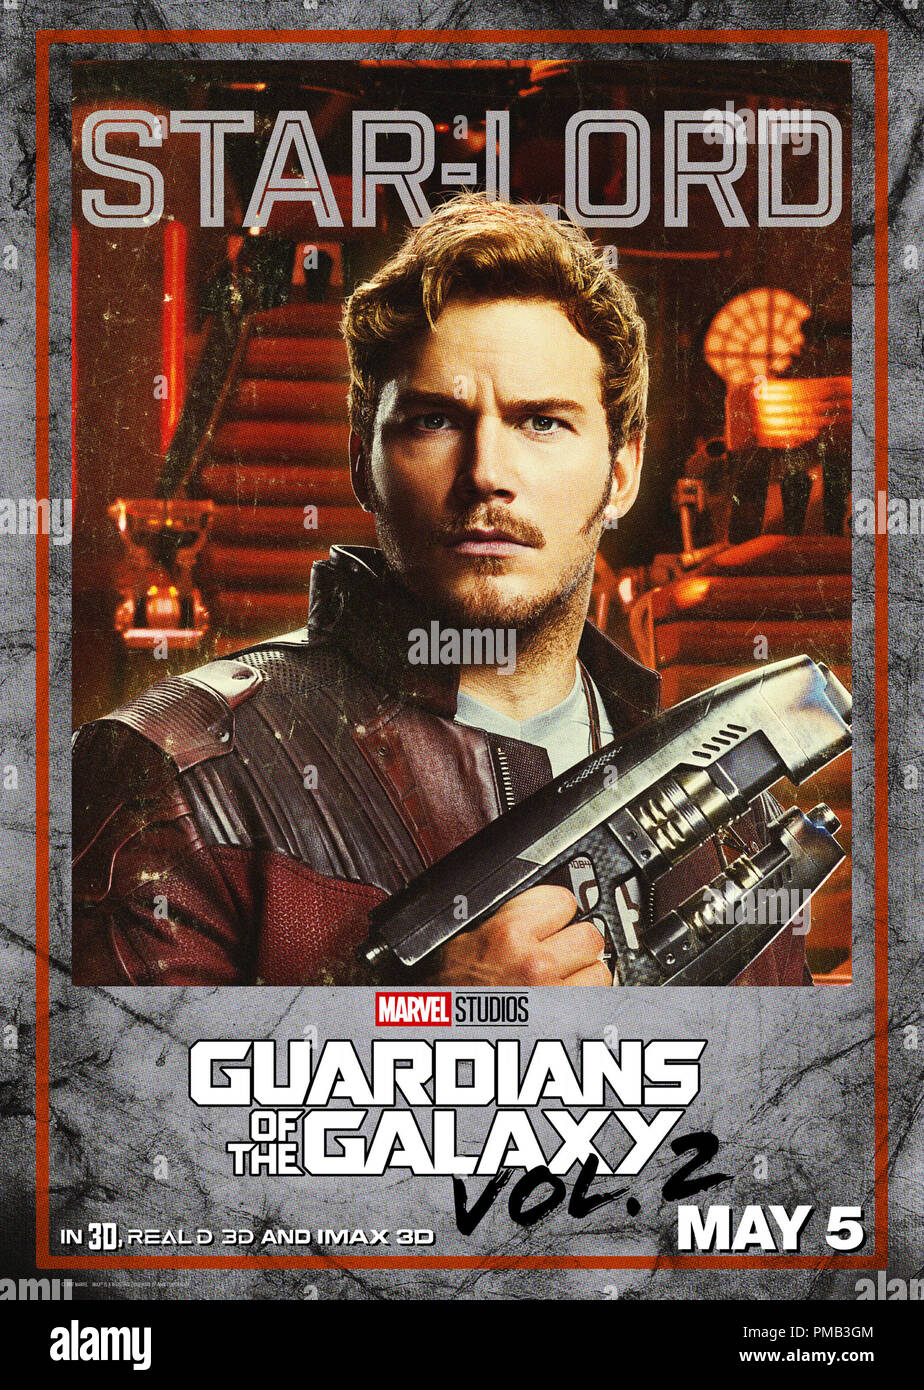 Guardians Of The Galaxy Vol 2 2017 Marvel Disney Poster Stock Photo Alamy